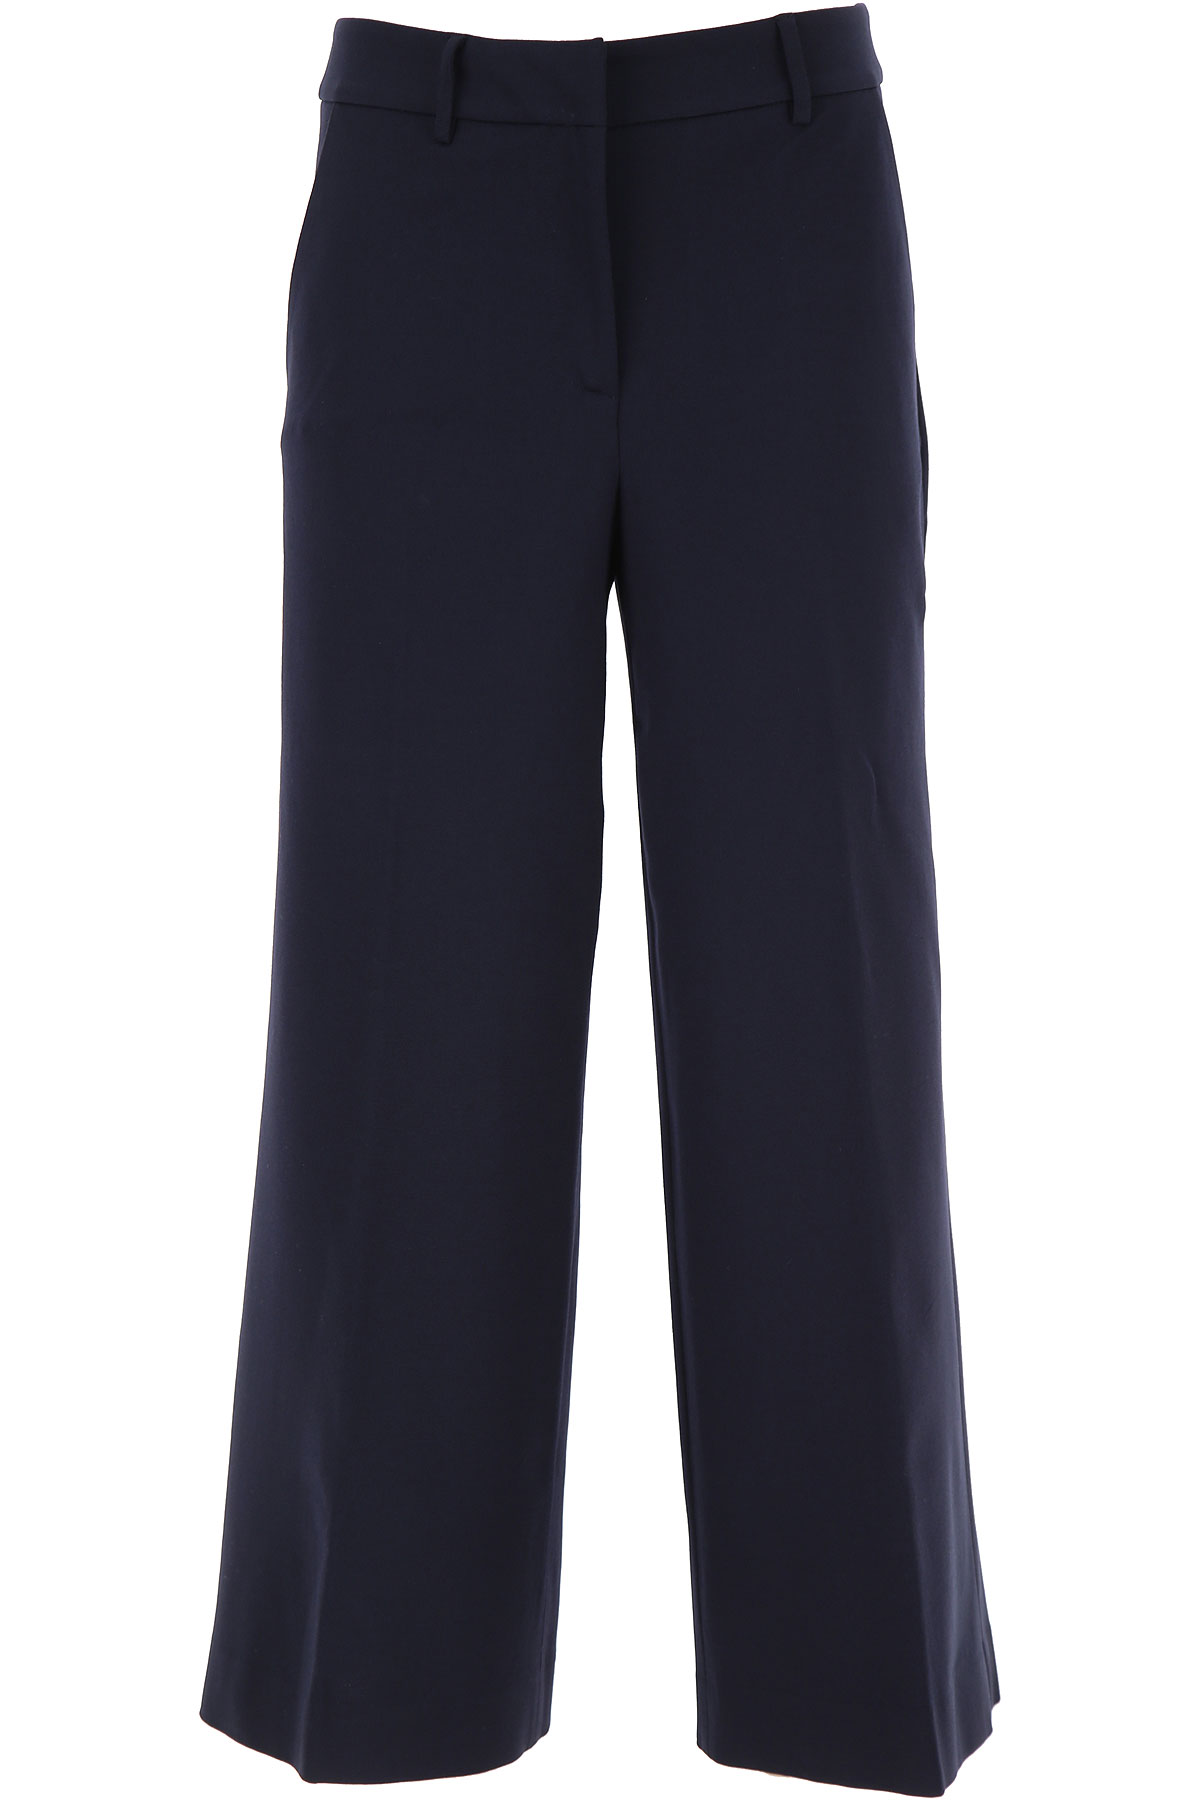 Liviana Conti Pants for Women On Sale, Navy Blue, viscosa, 2019, 6 8